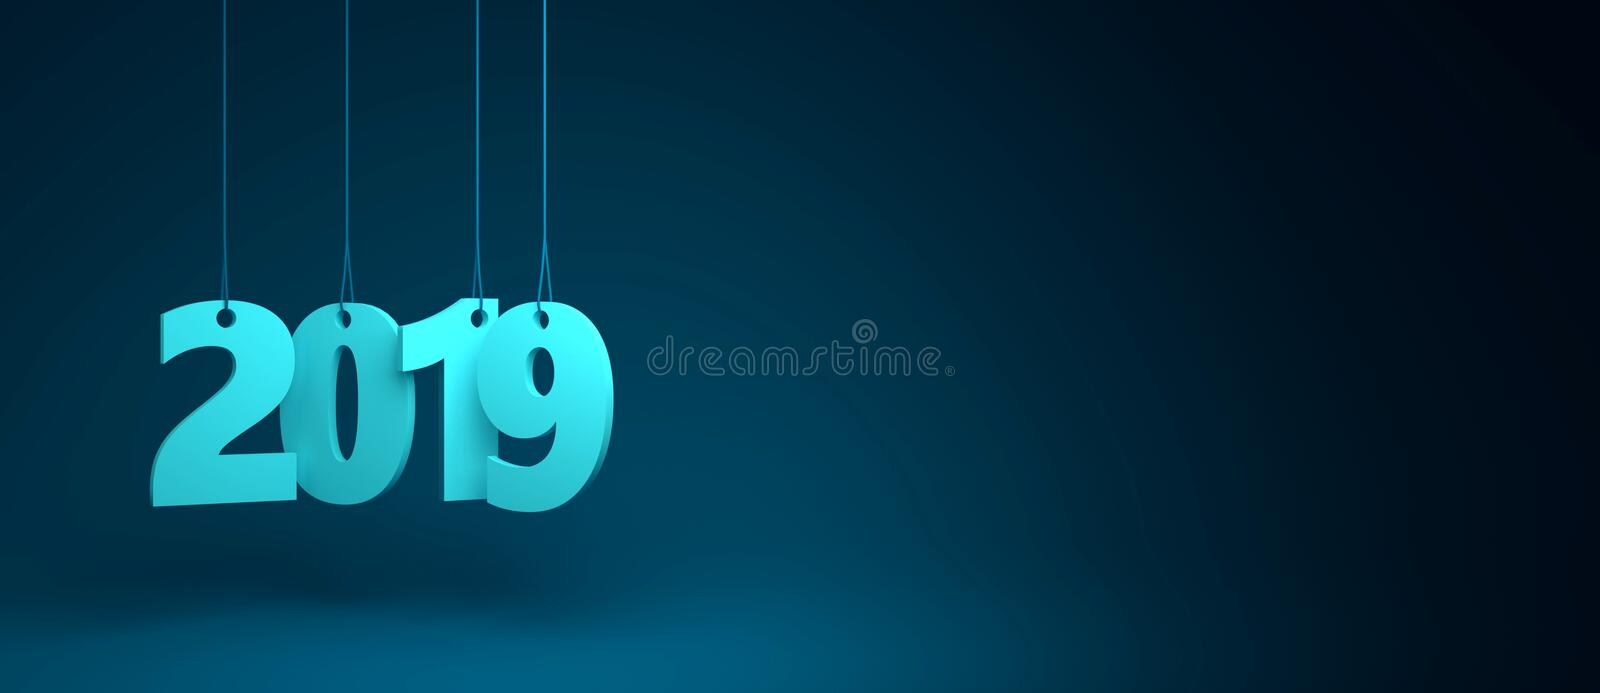 2019 3D Render on blue background stock photo